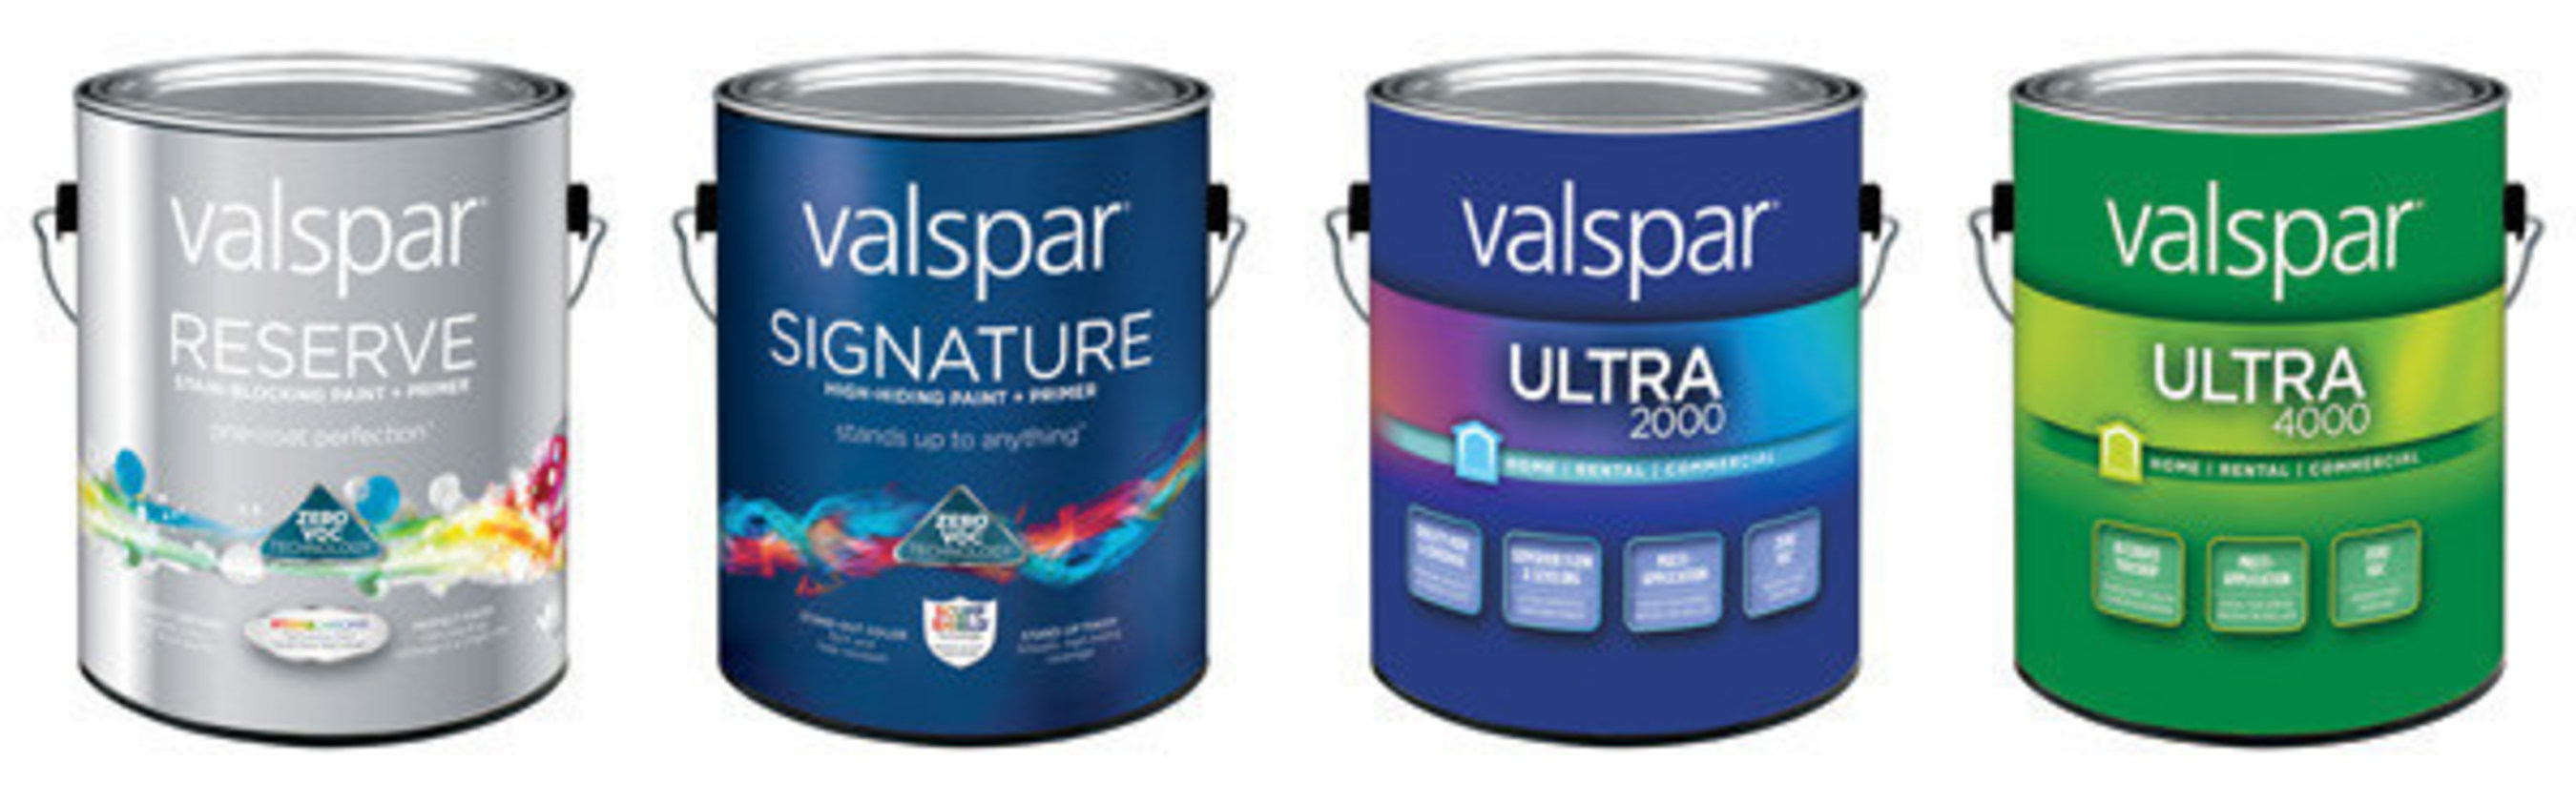 Valspar Paint launches the industryu0027s only full lineup of zero-VOC interior paints available  sc 1 st  PR Newswire & Breathe Easier With Valsparu0027s Invigorated Paint Line at Loweu0027s